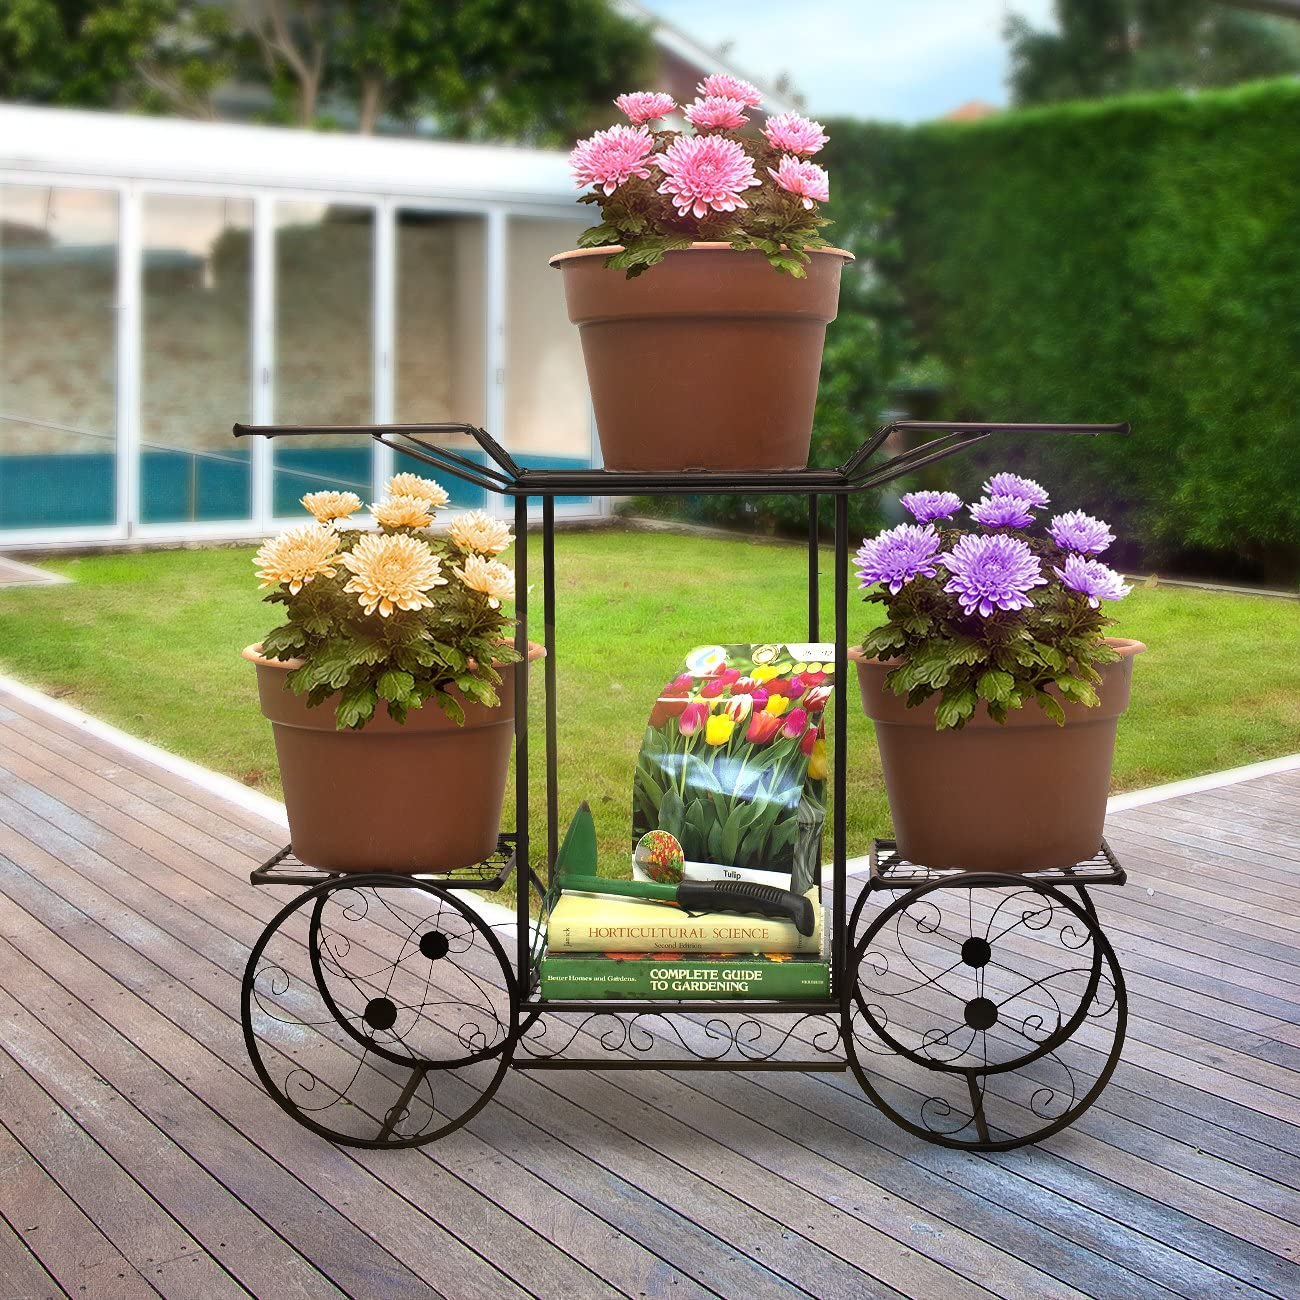 Sorbus-Garden-flower-display. 15 Unique Furniture Designs for Outdoor Small Spaces